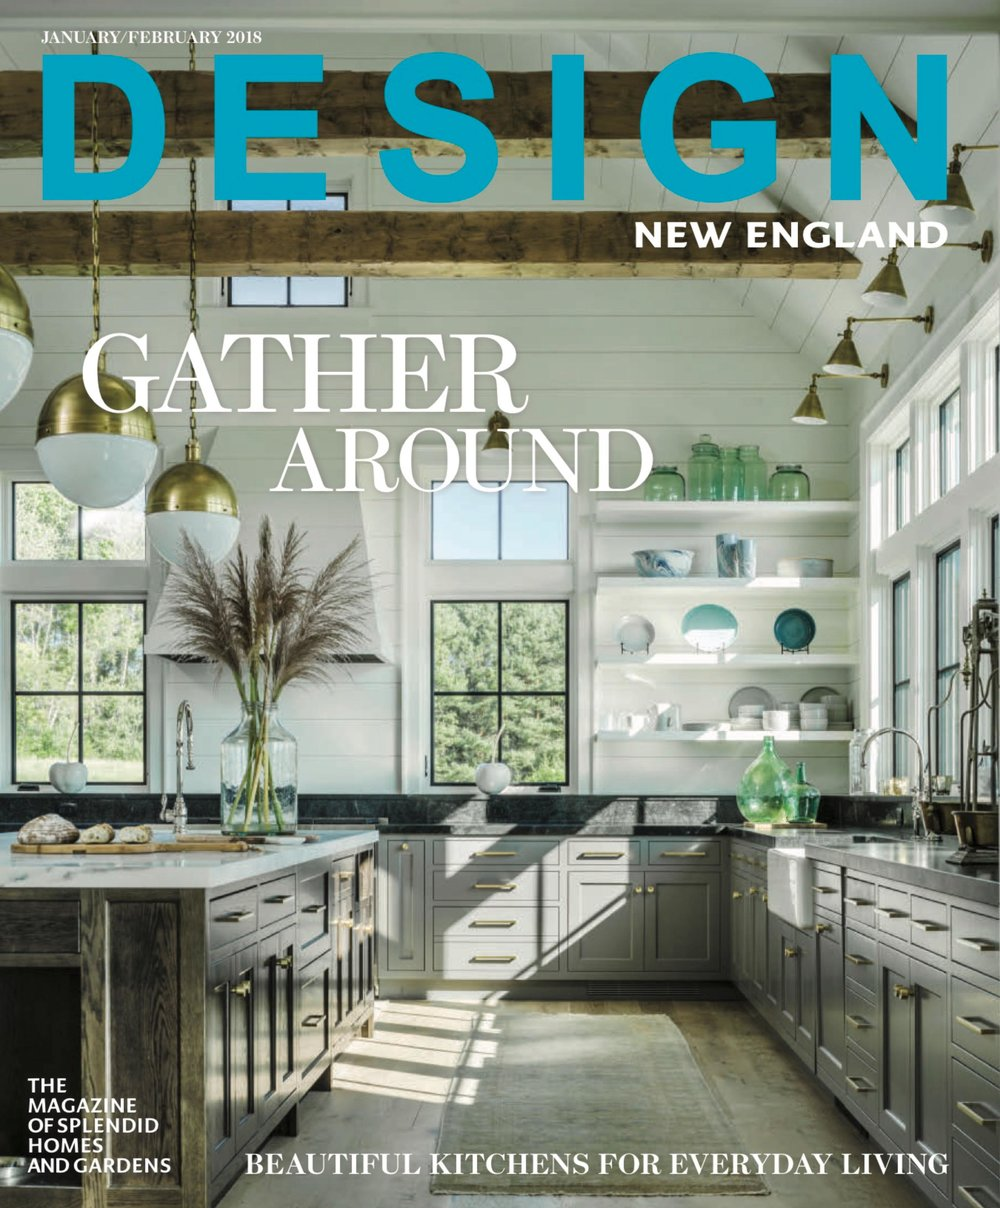 Design New England Magazine January-February 2018 issue